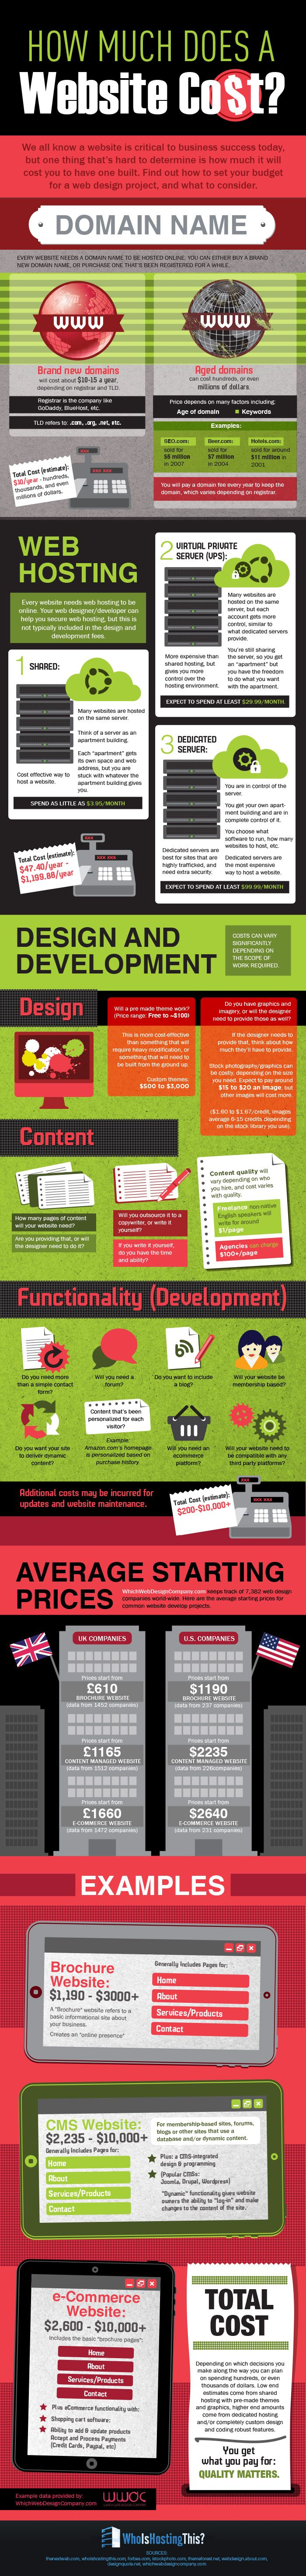 How Much Should a Website Cost? 4 Important Factors to Consider #Infographic #WebDesign